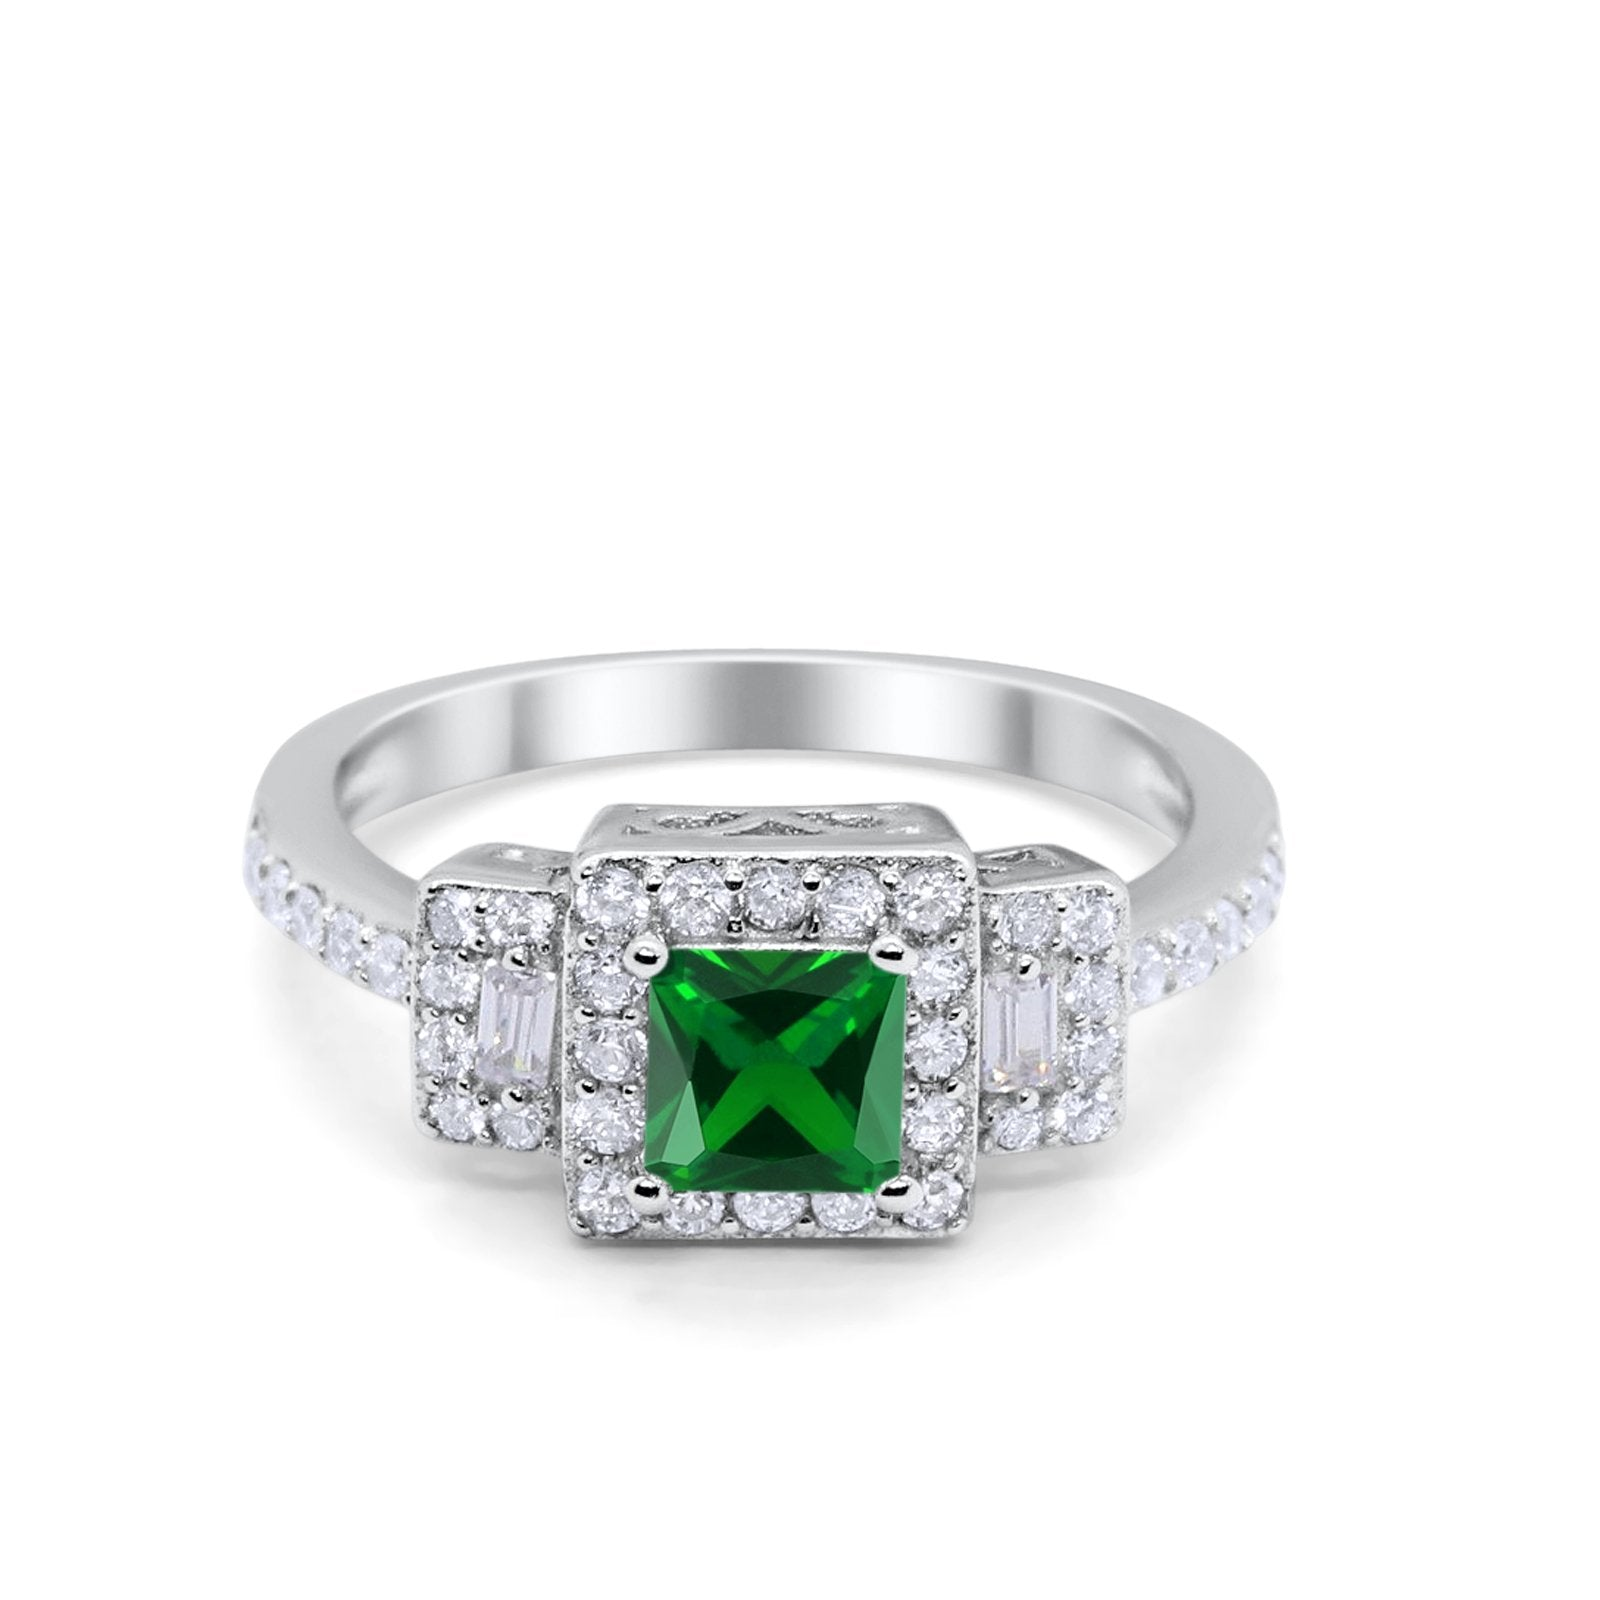 Halo Wedding Engagement Ring Round Baguette Simulated Green Emerald CZ 925 Sterling Silver